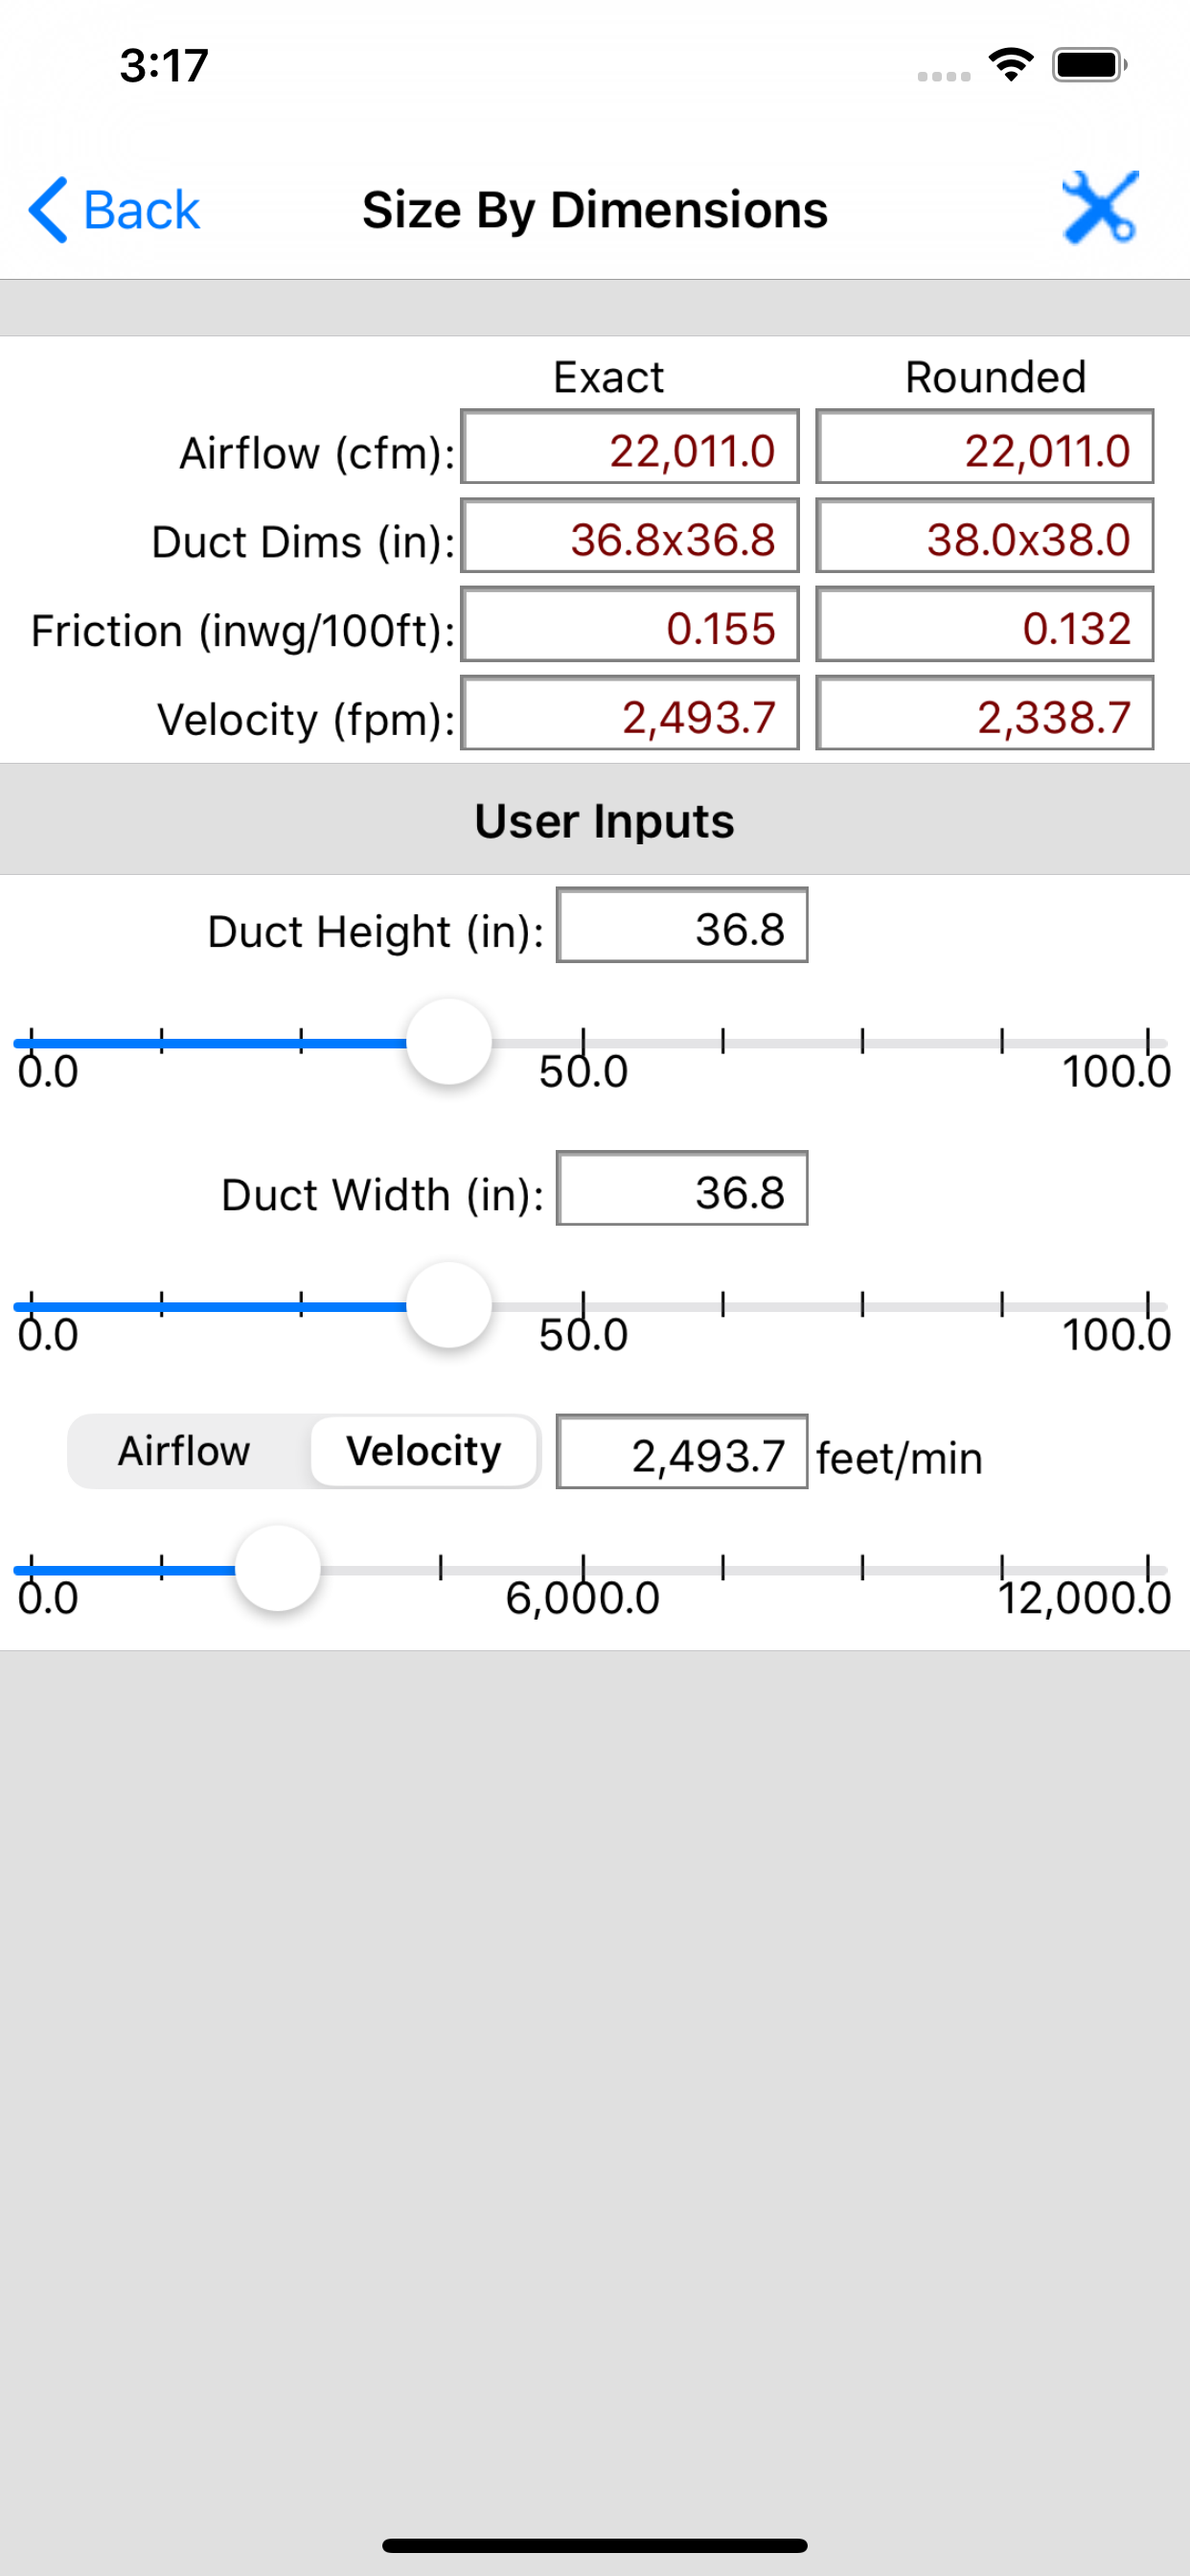 Carmel Software Corporation | HVAC Duct Sizer iOS App